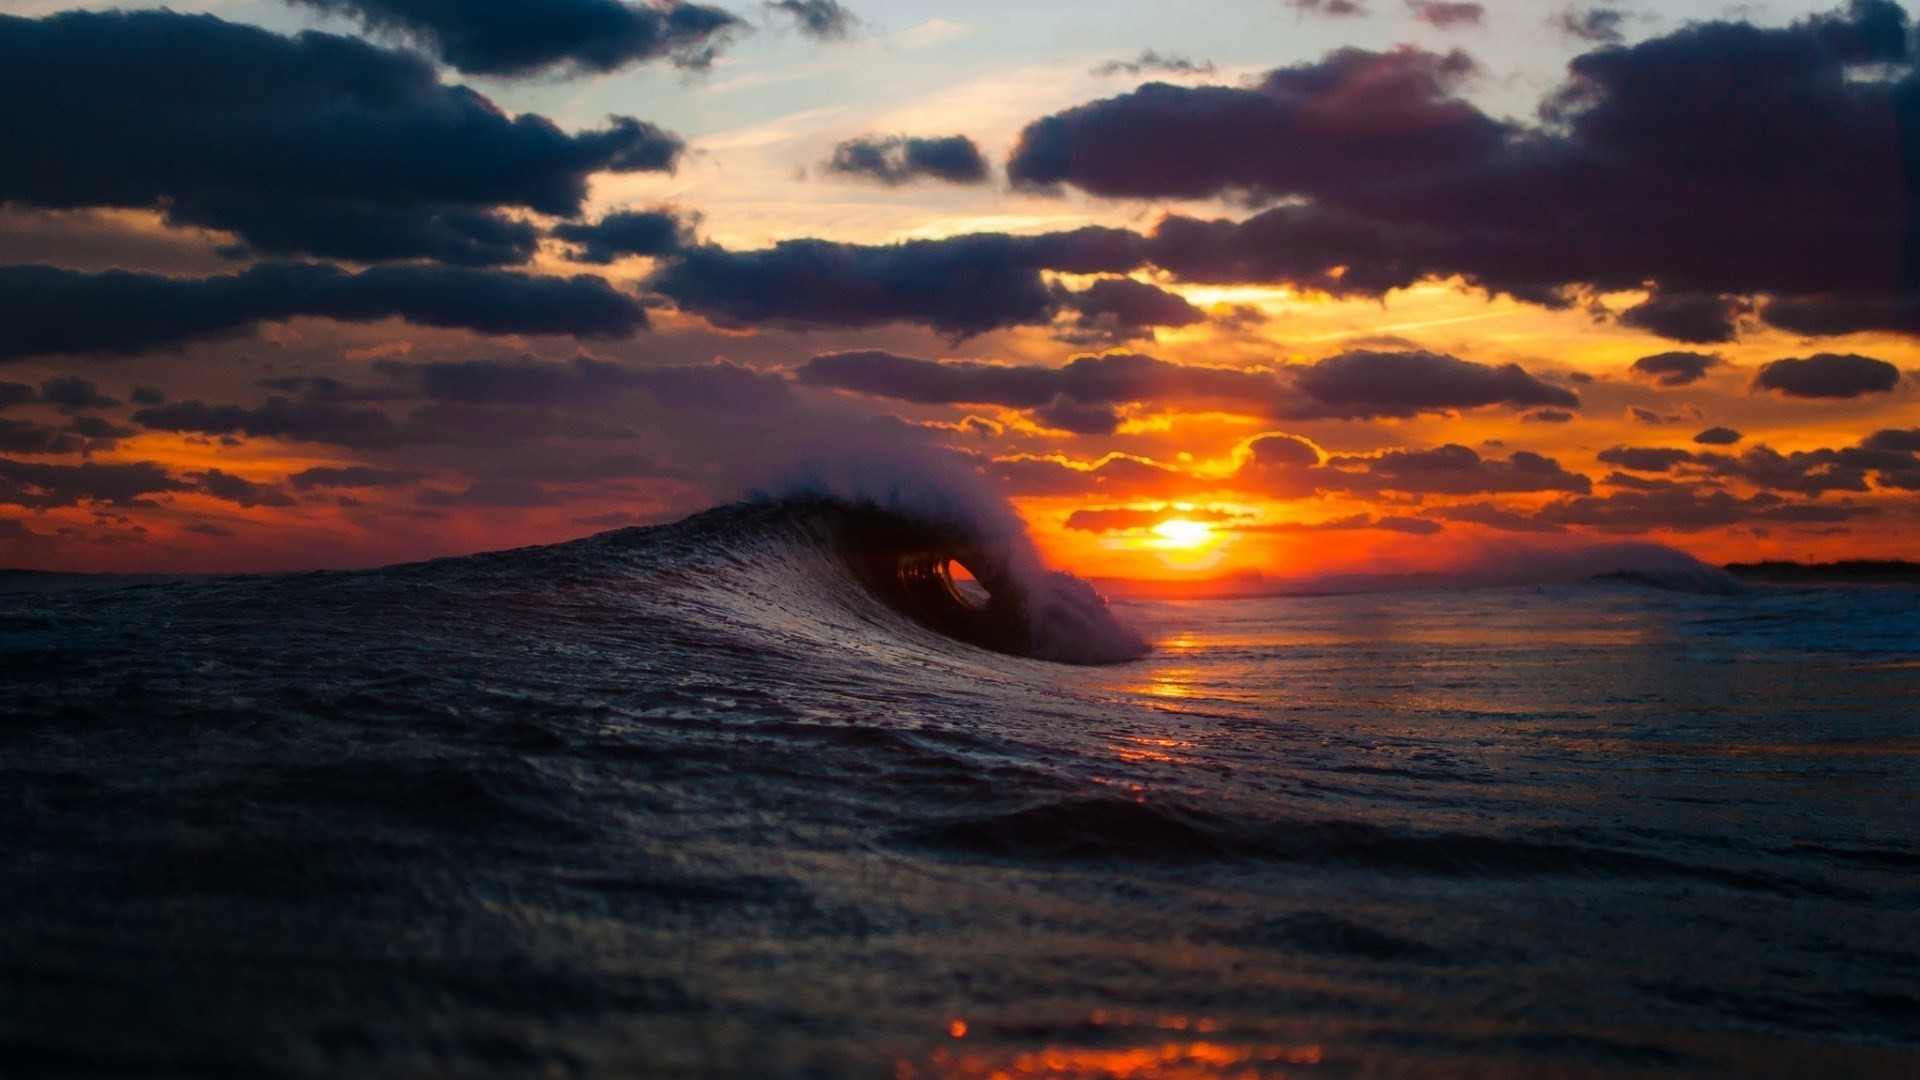 Surfing Wallpaper 1920x1080 76 Images